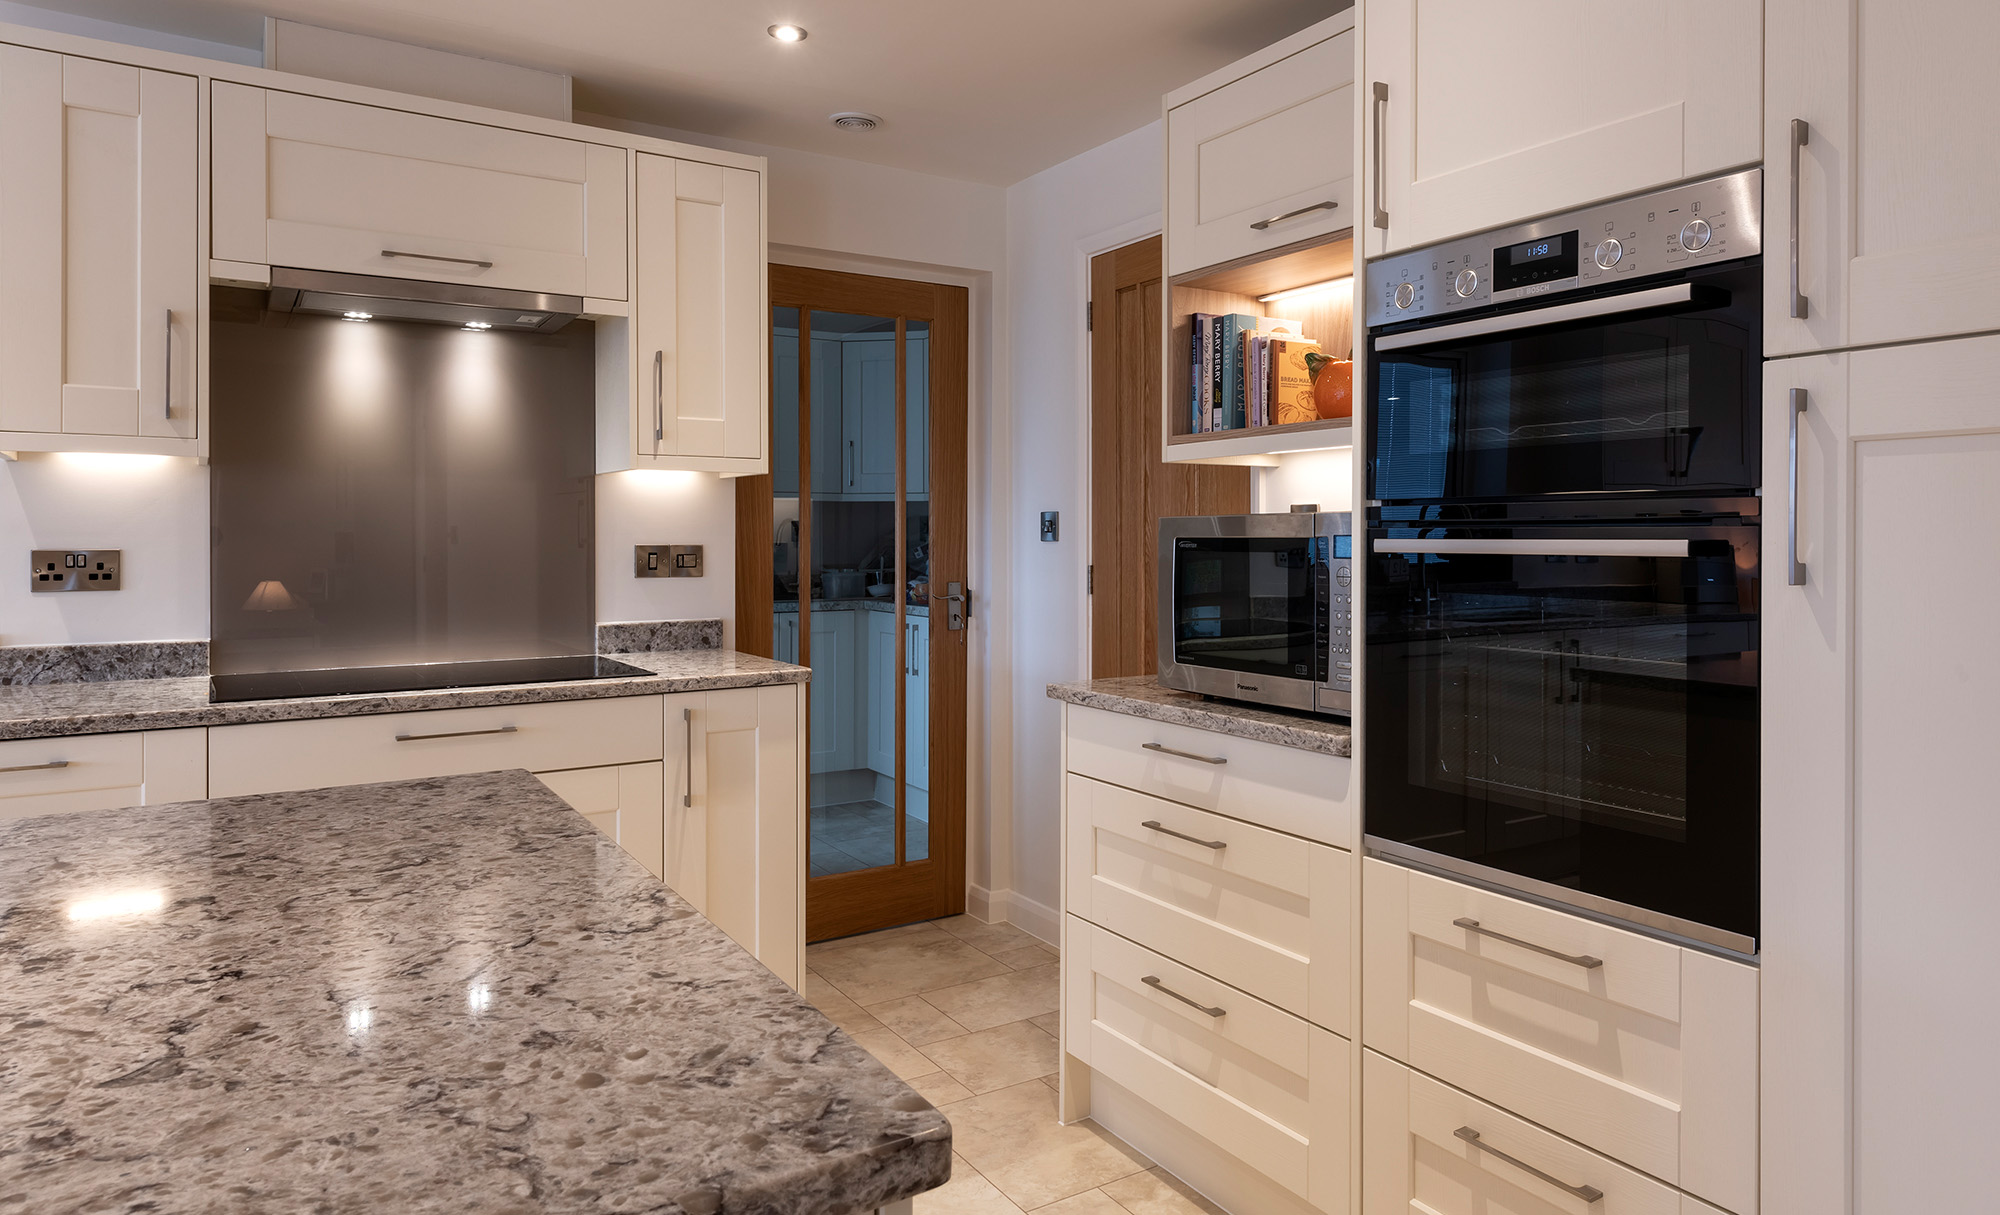 Kensington Painted Ivory Kitchen by Portishead Kitchens Oven